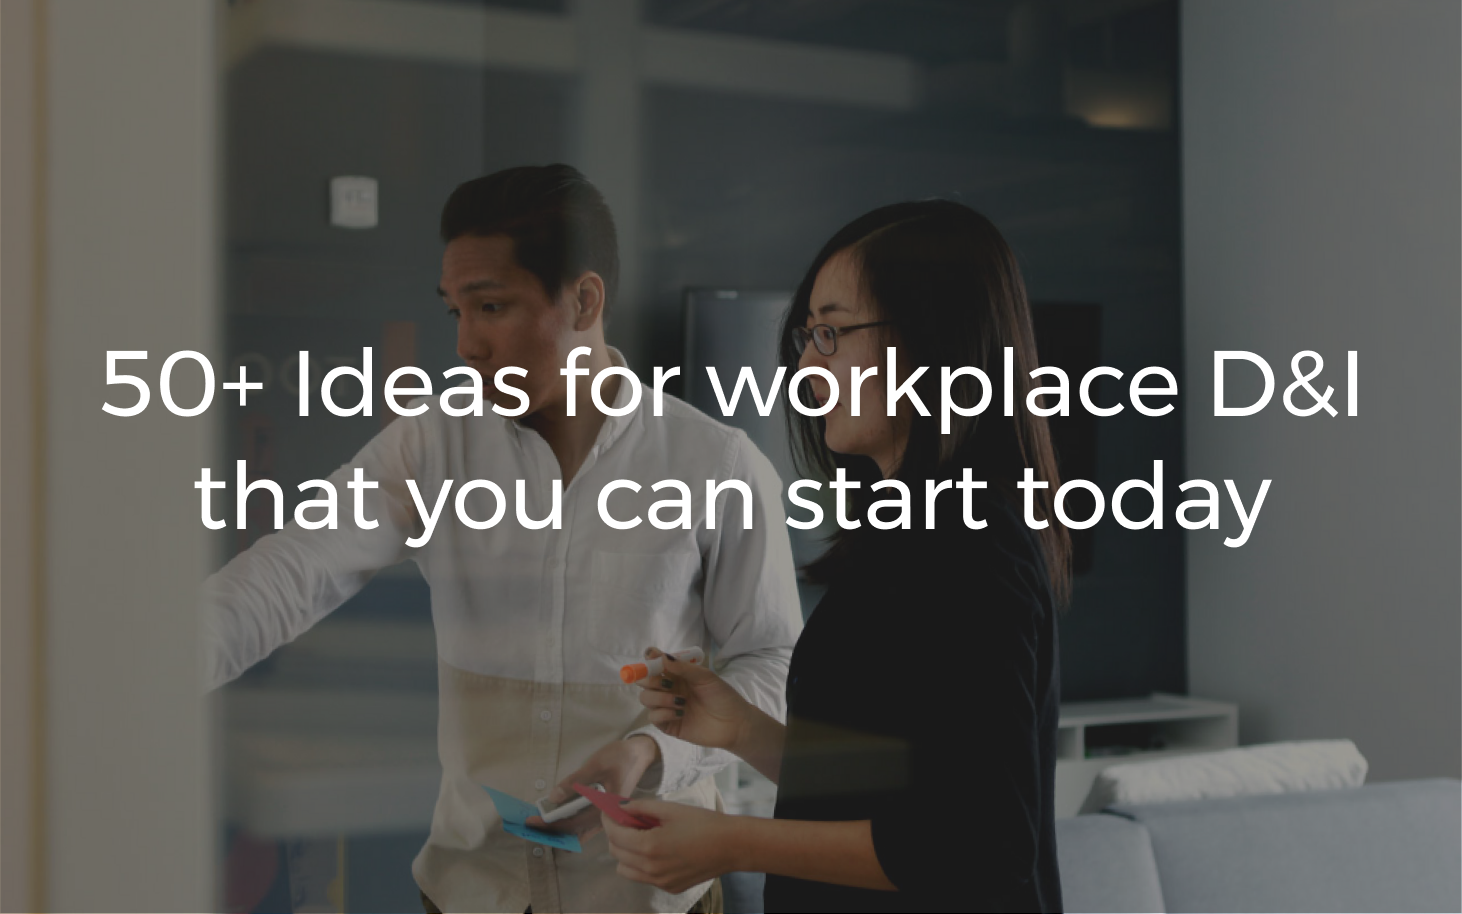 When a problem is as complex as Diversity & Inclusion, it can be hard to know where to start. Instead of waiting for more budget, executive approval, or full-time staff, here is a list of ideas to get started sooner than later.